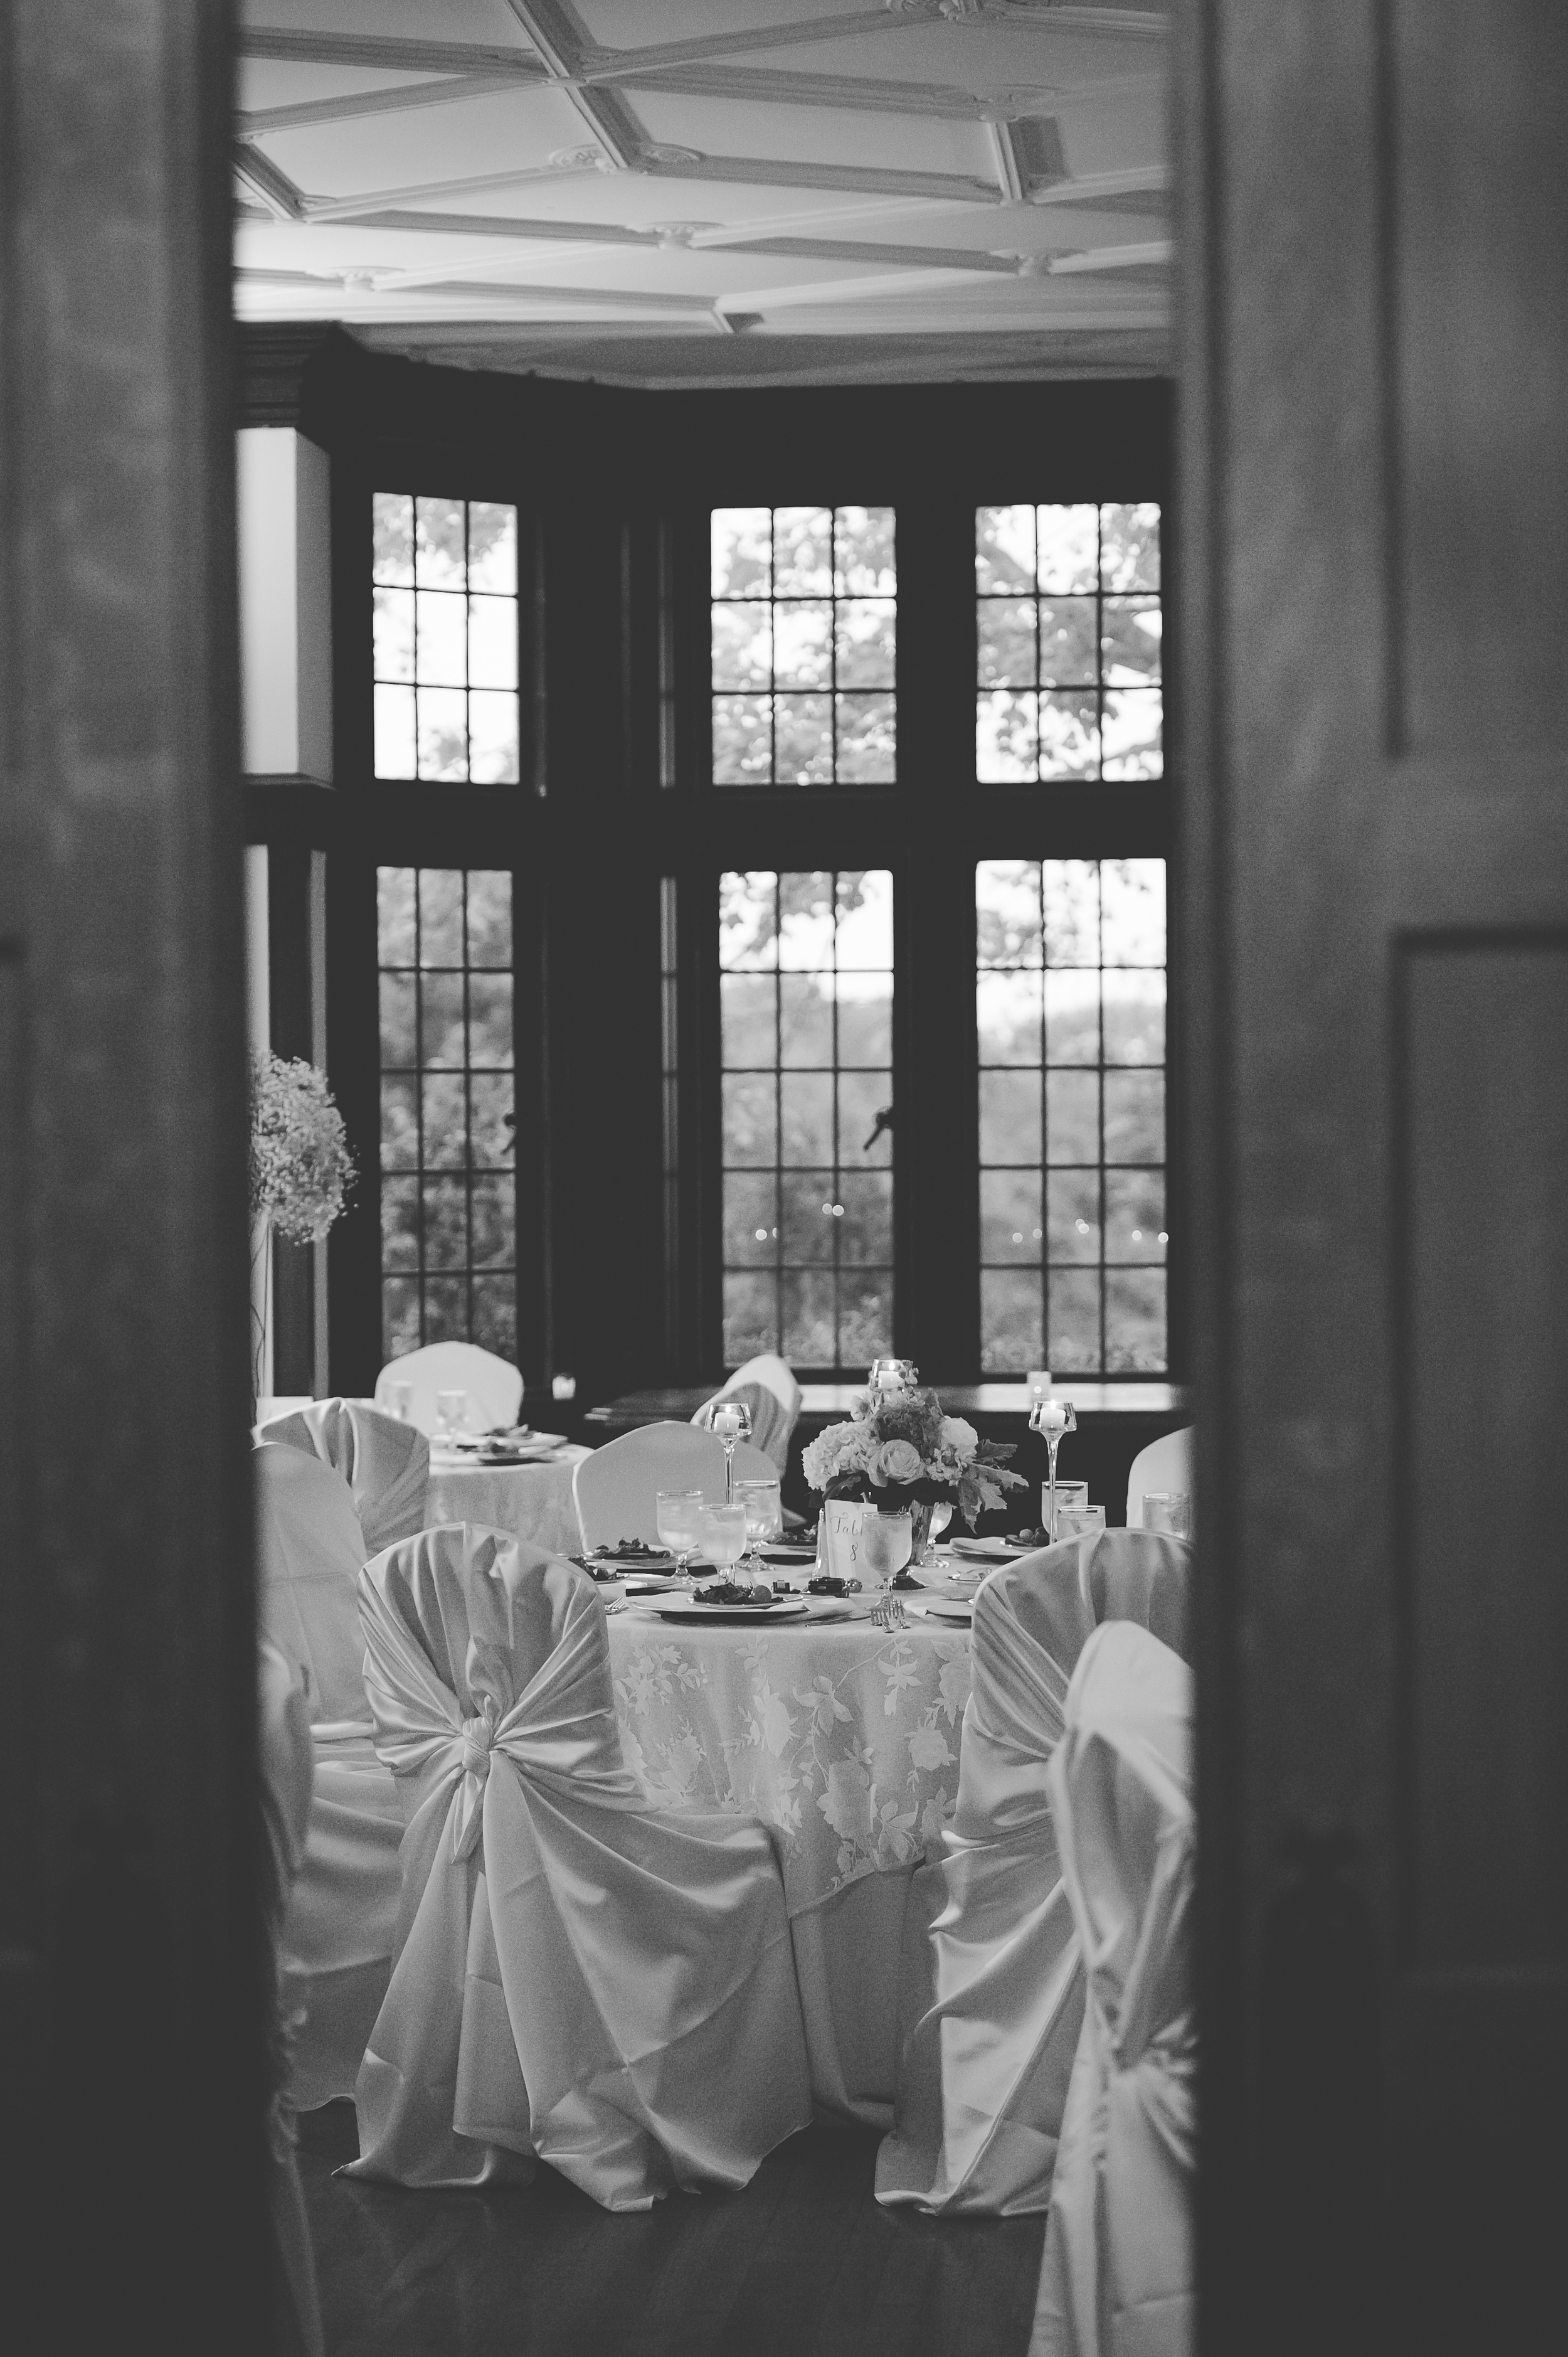 waveny_house_wedding_New_canaan_CT_Amy_Champagne_Events970.jpg